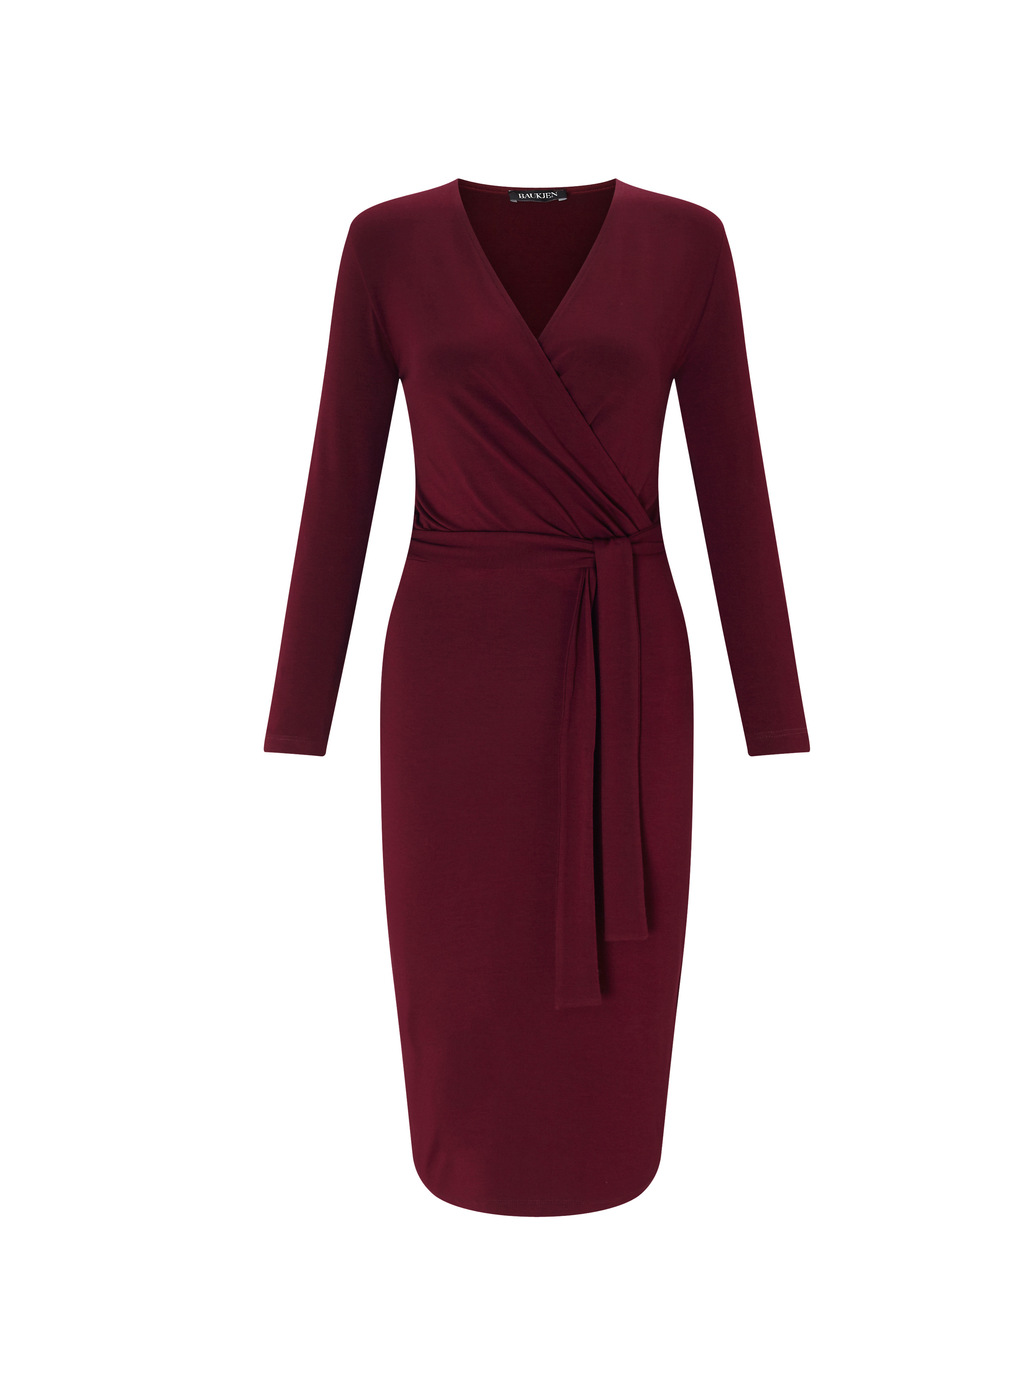 Womenswear Elswick Dress - style: faux wrap/wrap; length: below the knee; neckline: v-neck; pattern: plain; waist detail: belted waist/tie at waist/drawstring; predominant colour: burgundy; occasions: evening; fit: body skimming; fibres: viscose/rayon - stretch; sleeve length: long sleeve; sleeve style: standard; pattern type: fabric; texture group: jersey - stretchy/drapey; season: a/w 2016